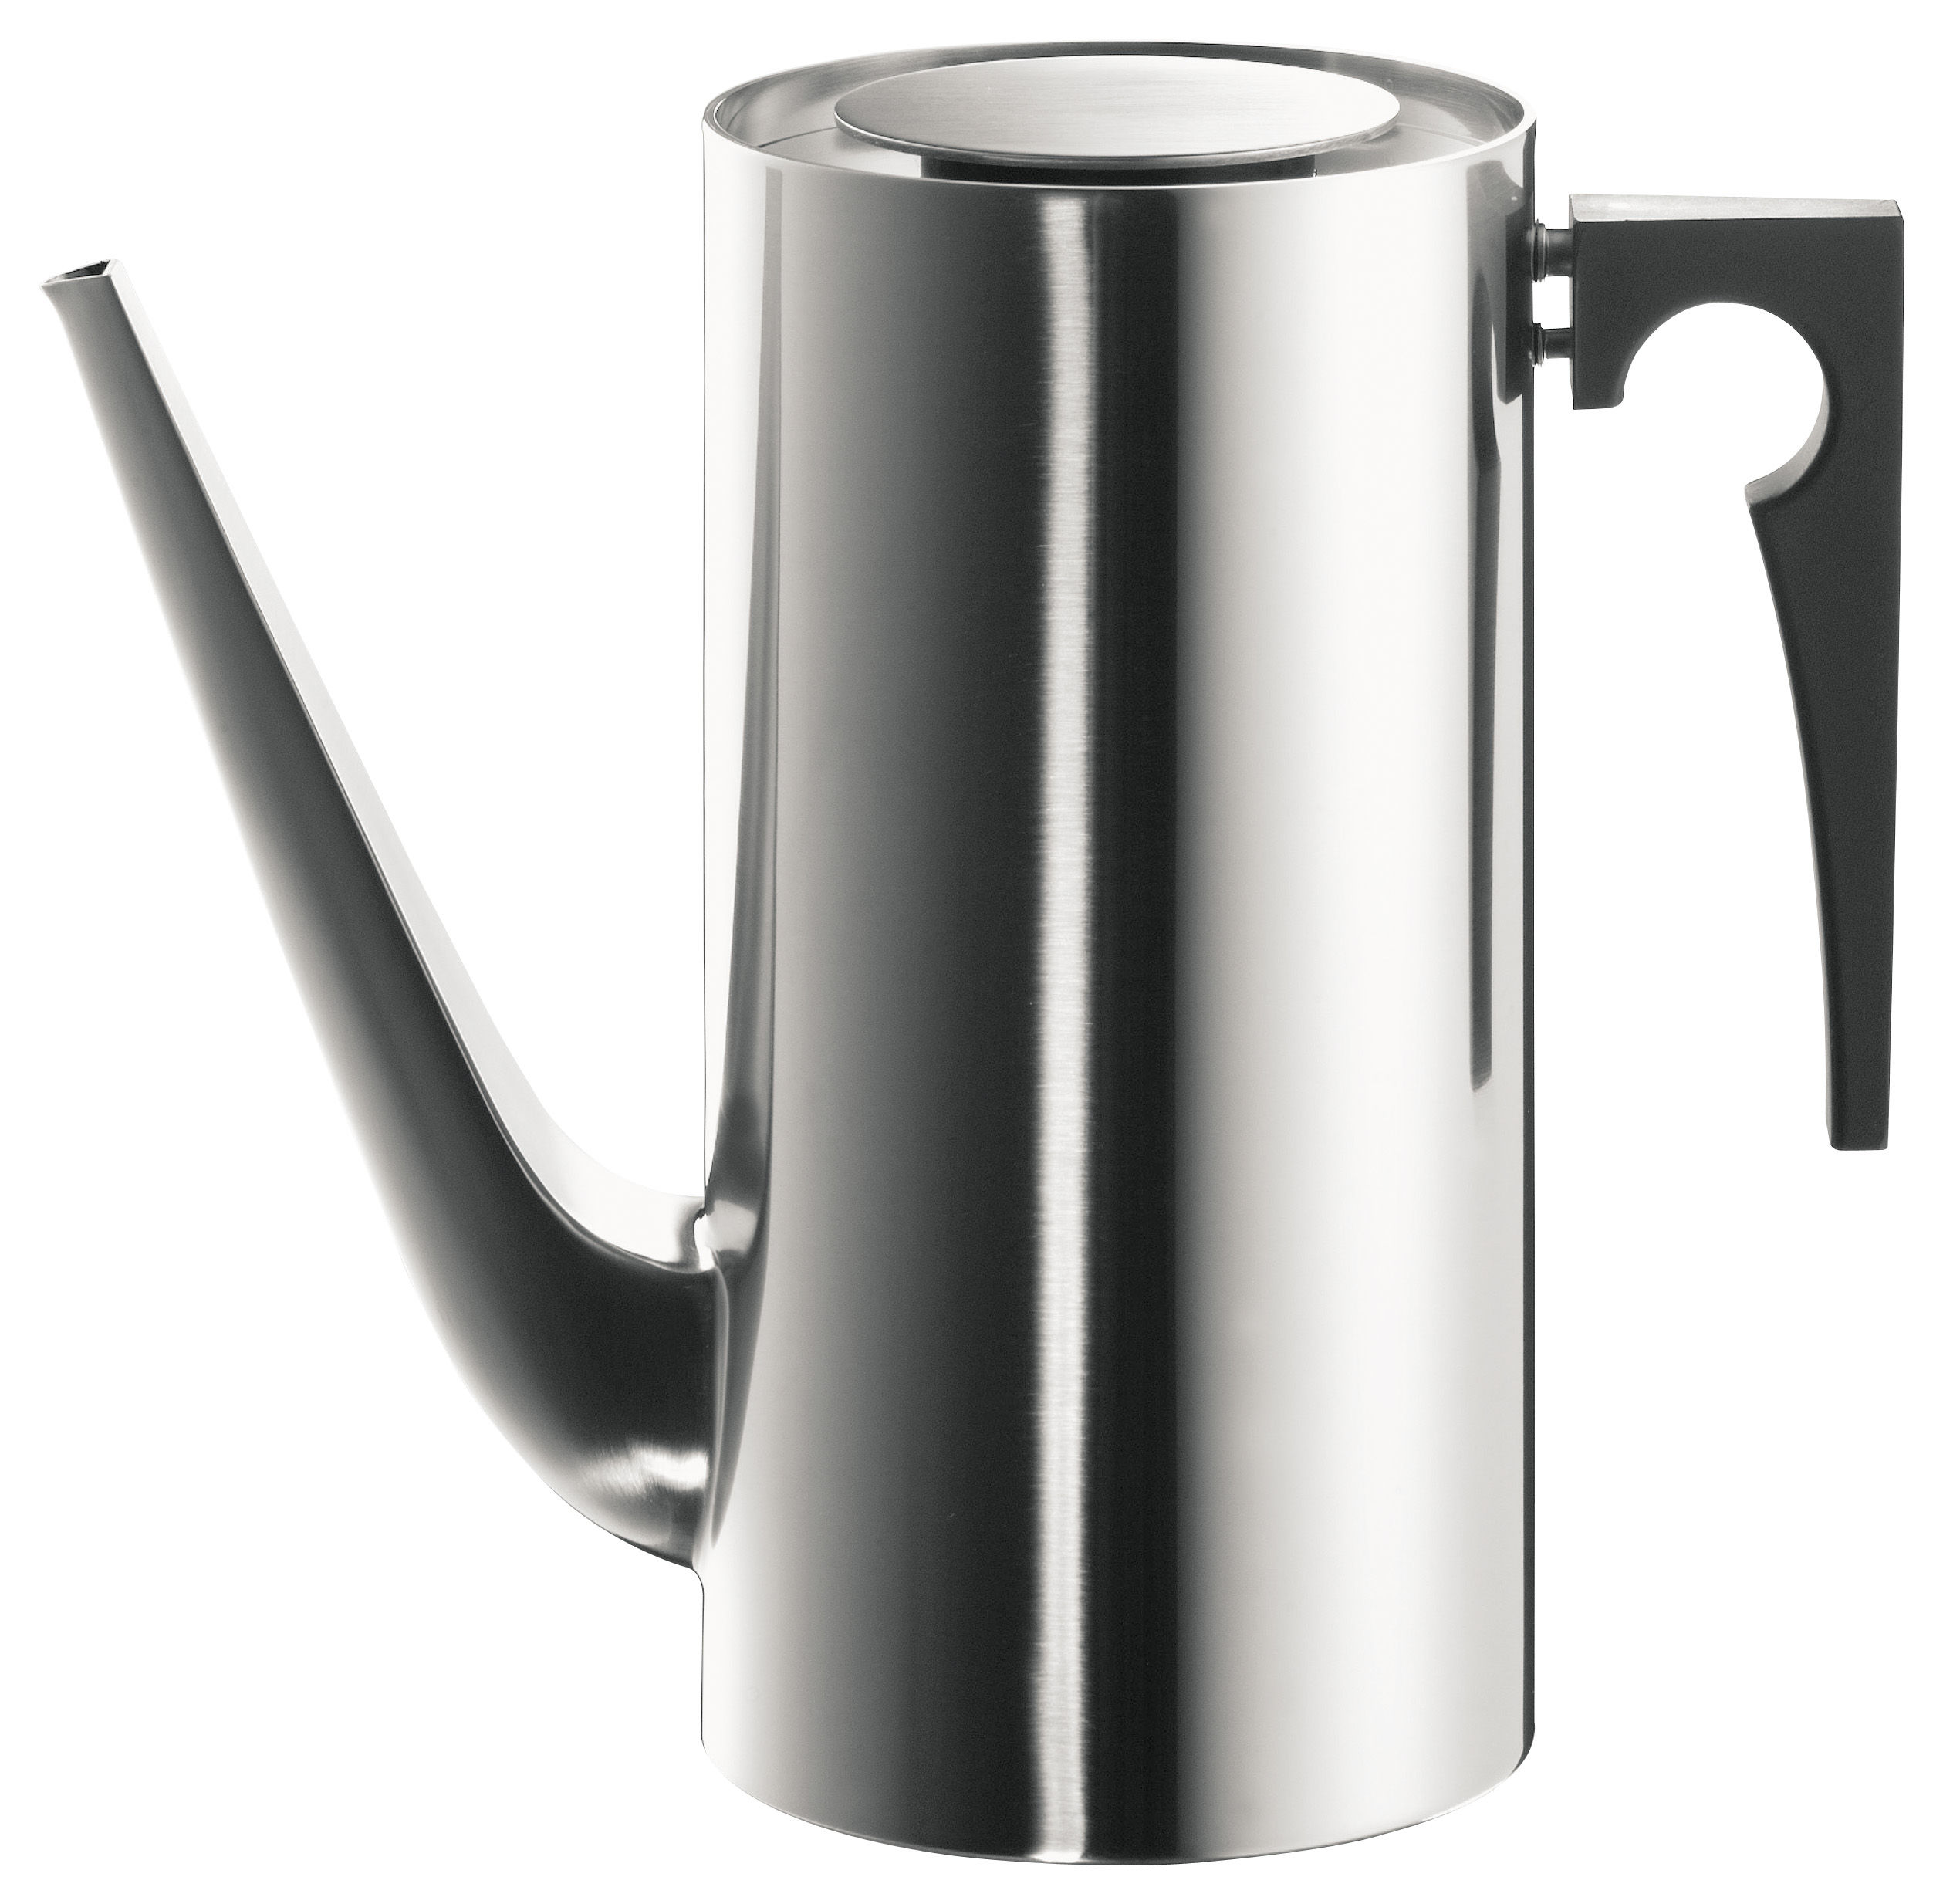 Tableware - Tea & Coffee Accessories - Cylinda Line Coffee pot by Stelton - Satin polished steel - 1,5 L - Polished stainless steel